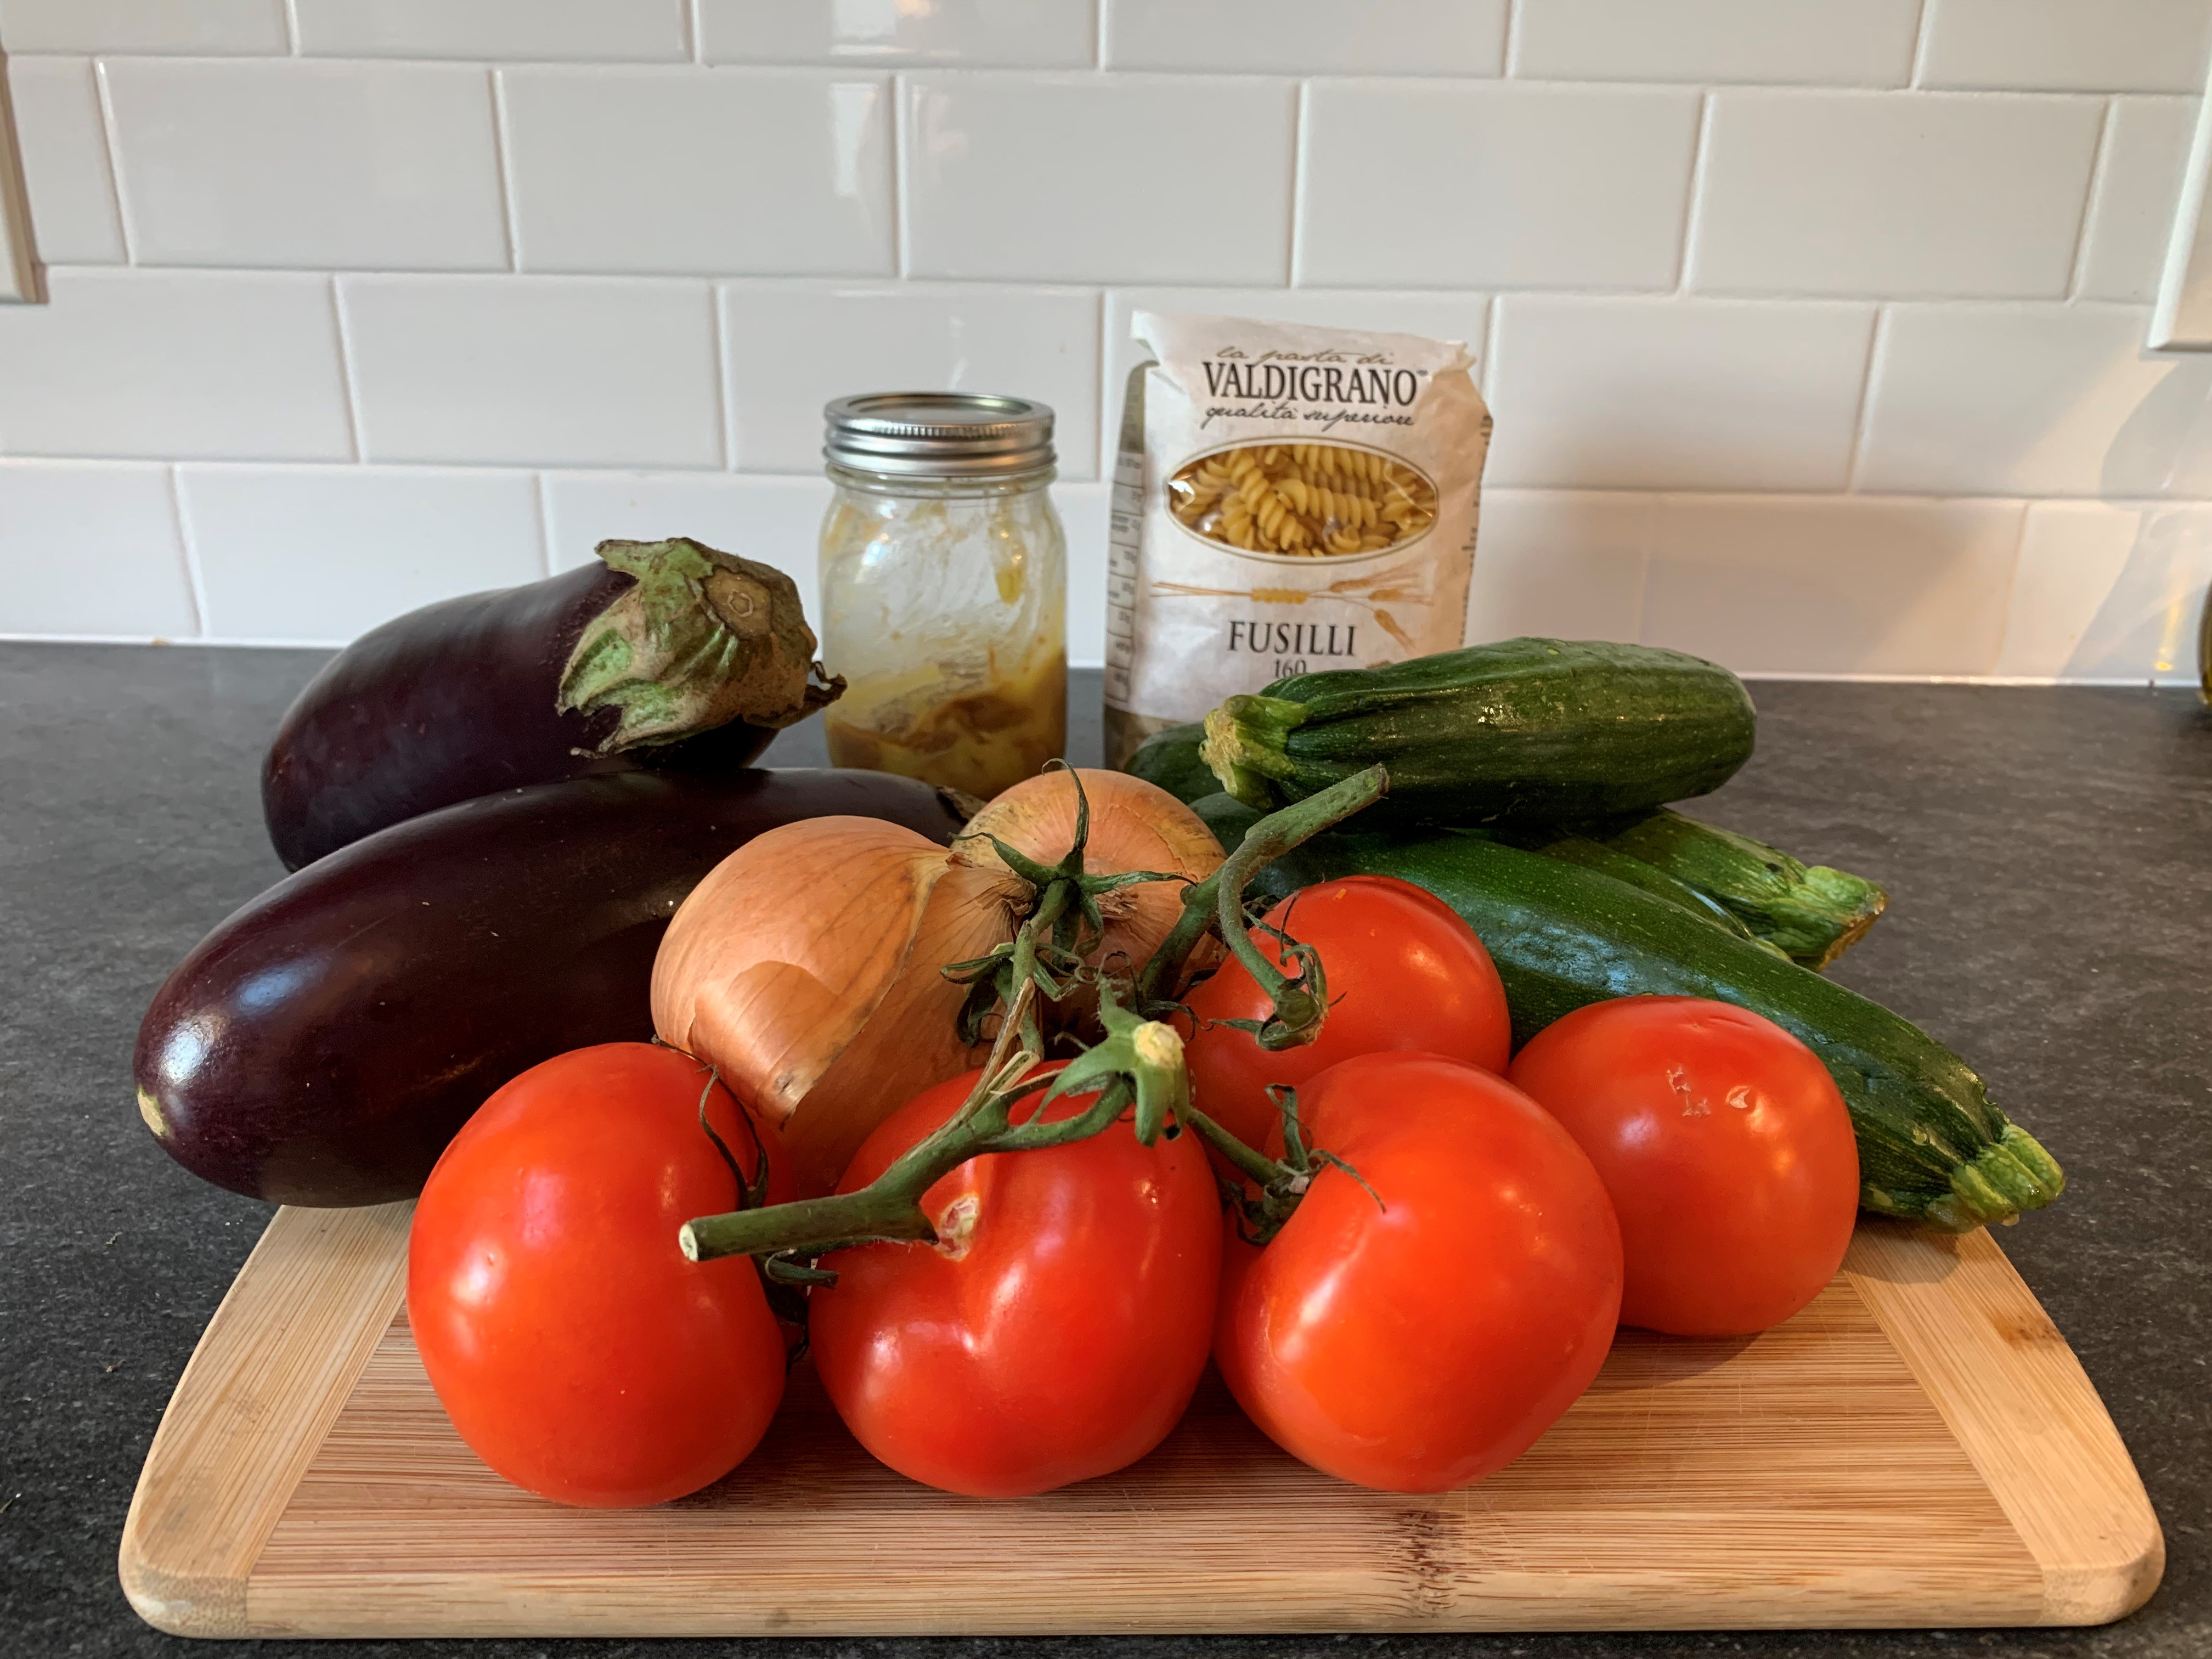 A kitchen counter with various vegetables and the ingredients for ratatouille pasta